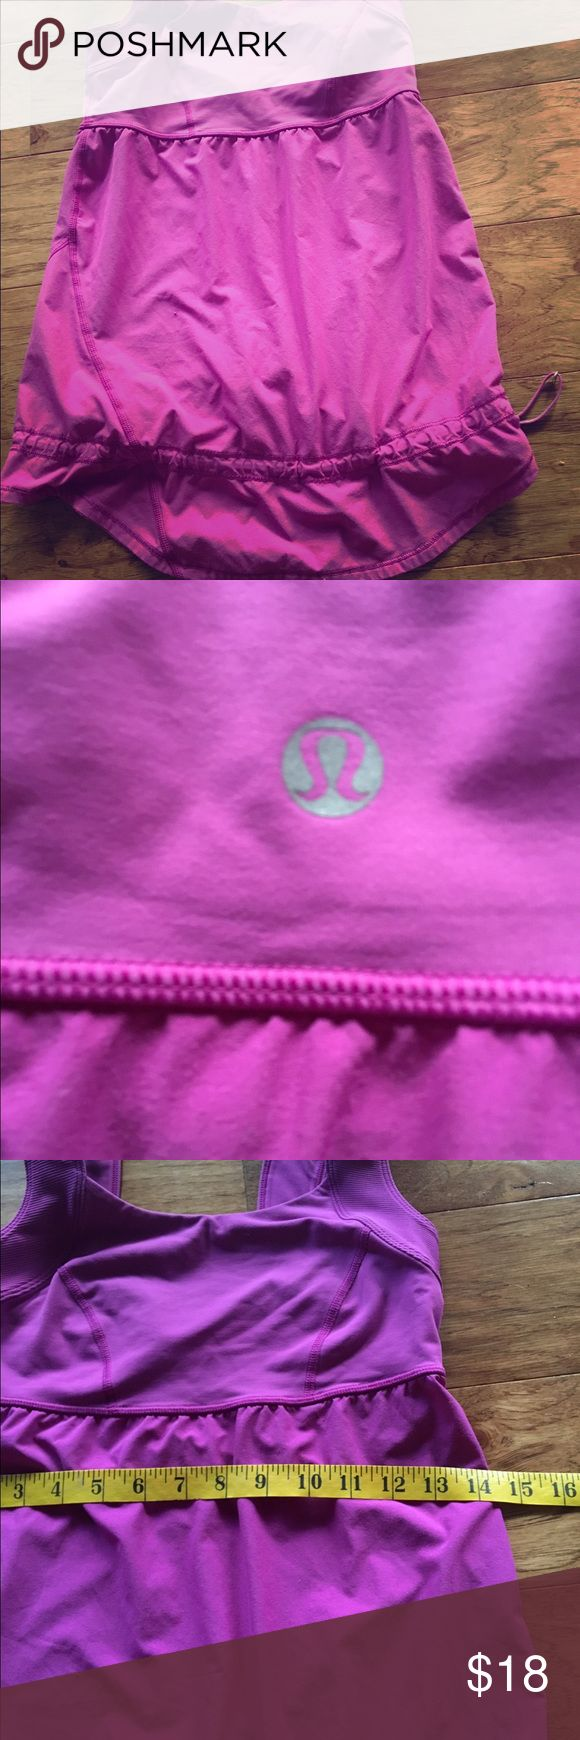 Lululemon hot pink Purple  loose tank top 6 Great PRE used purple loose adjustable fit with the silver gadgets to adjust the fit and bunch up the bottom sz 6 comfy the best fit snug lululemon athletica Tops Tank Tops